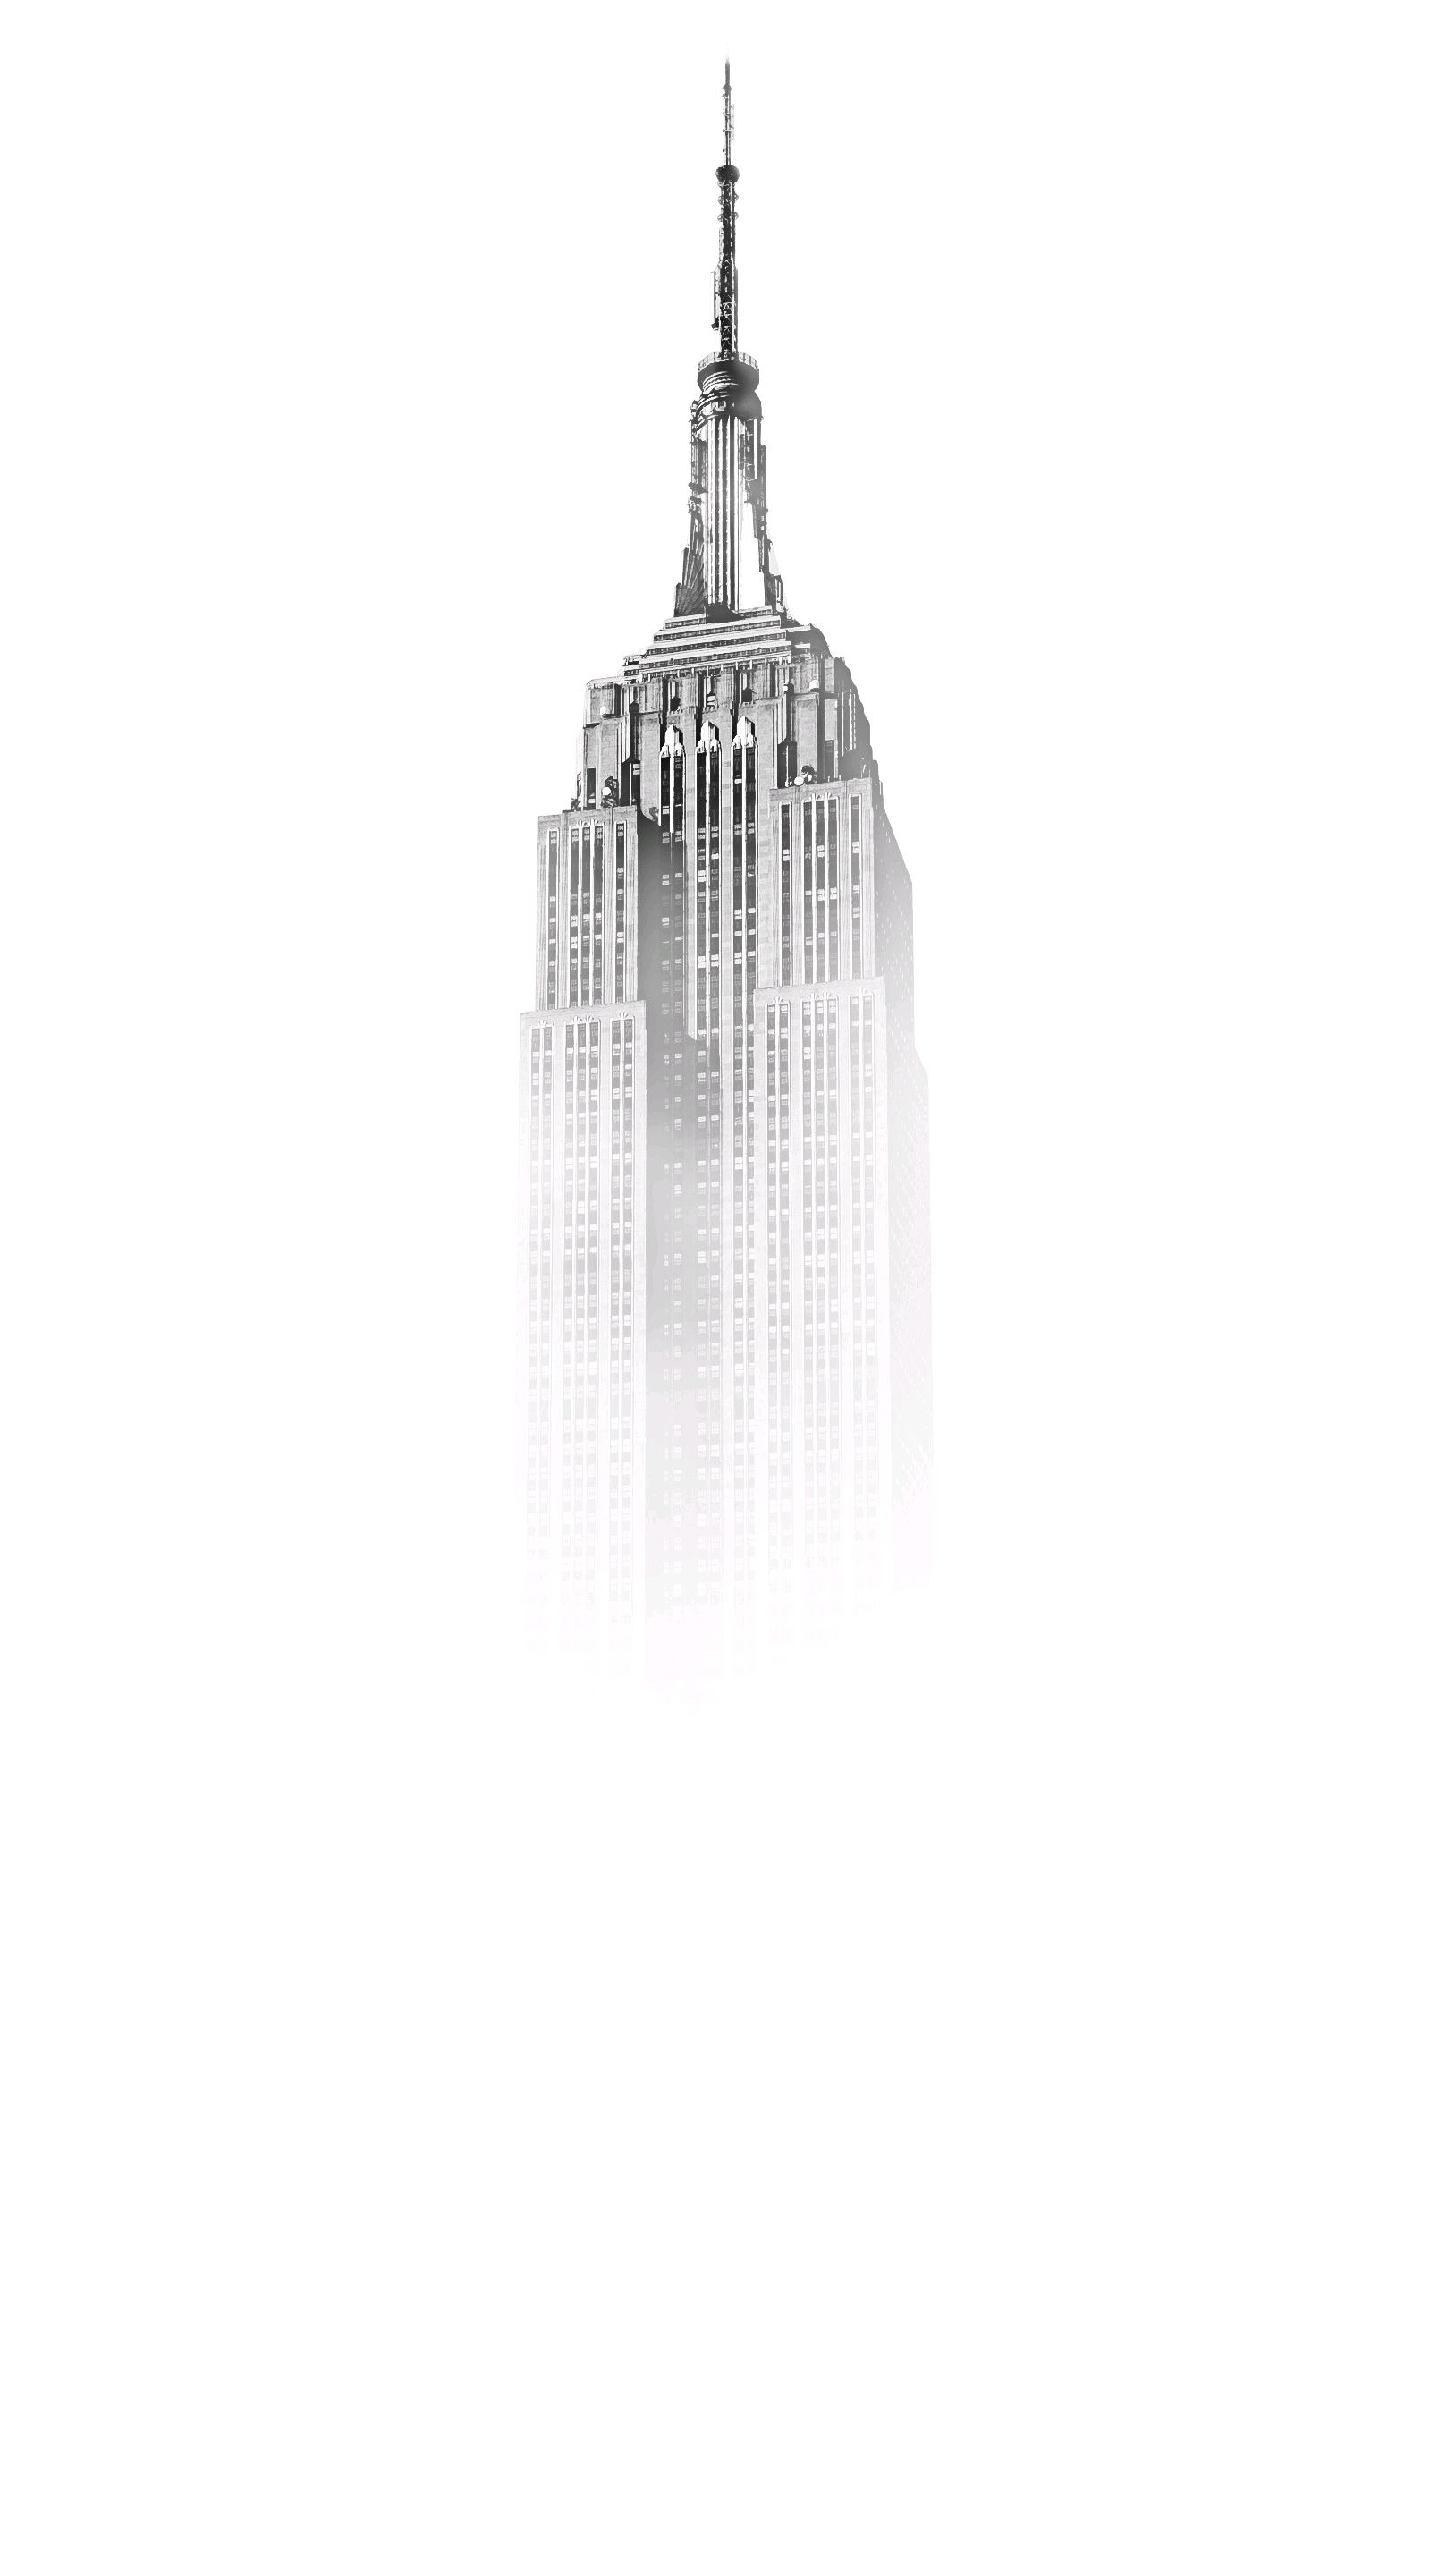 Empire State Building Wide Minimal Wallpaper iPhone Wallpaper iphoneswallpapers com